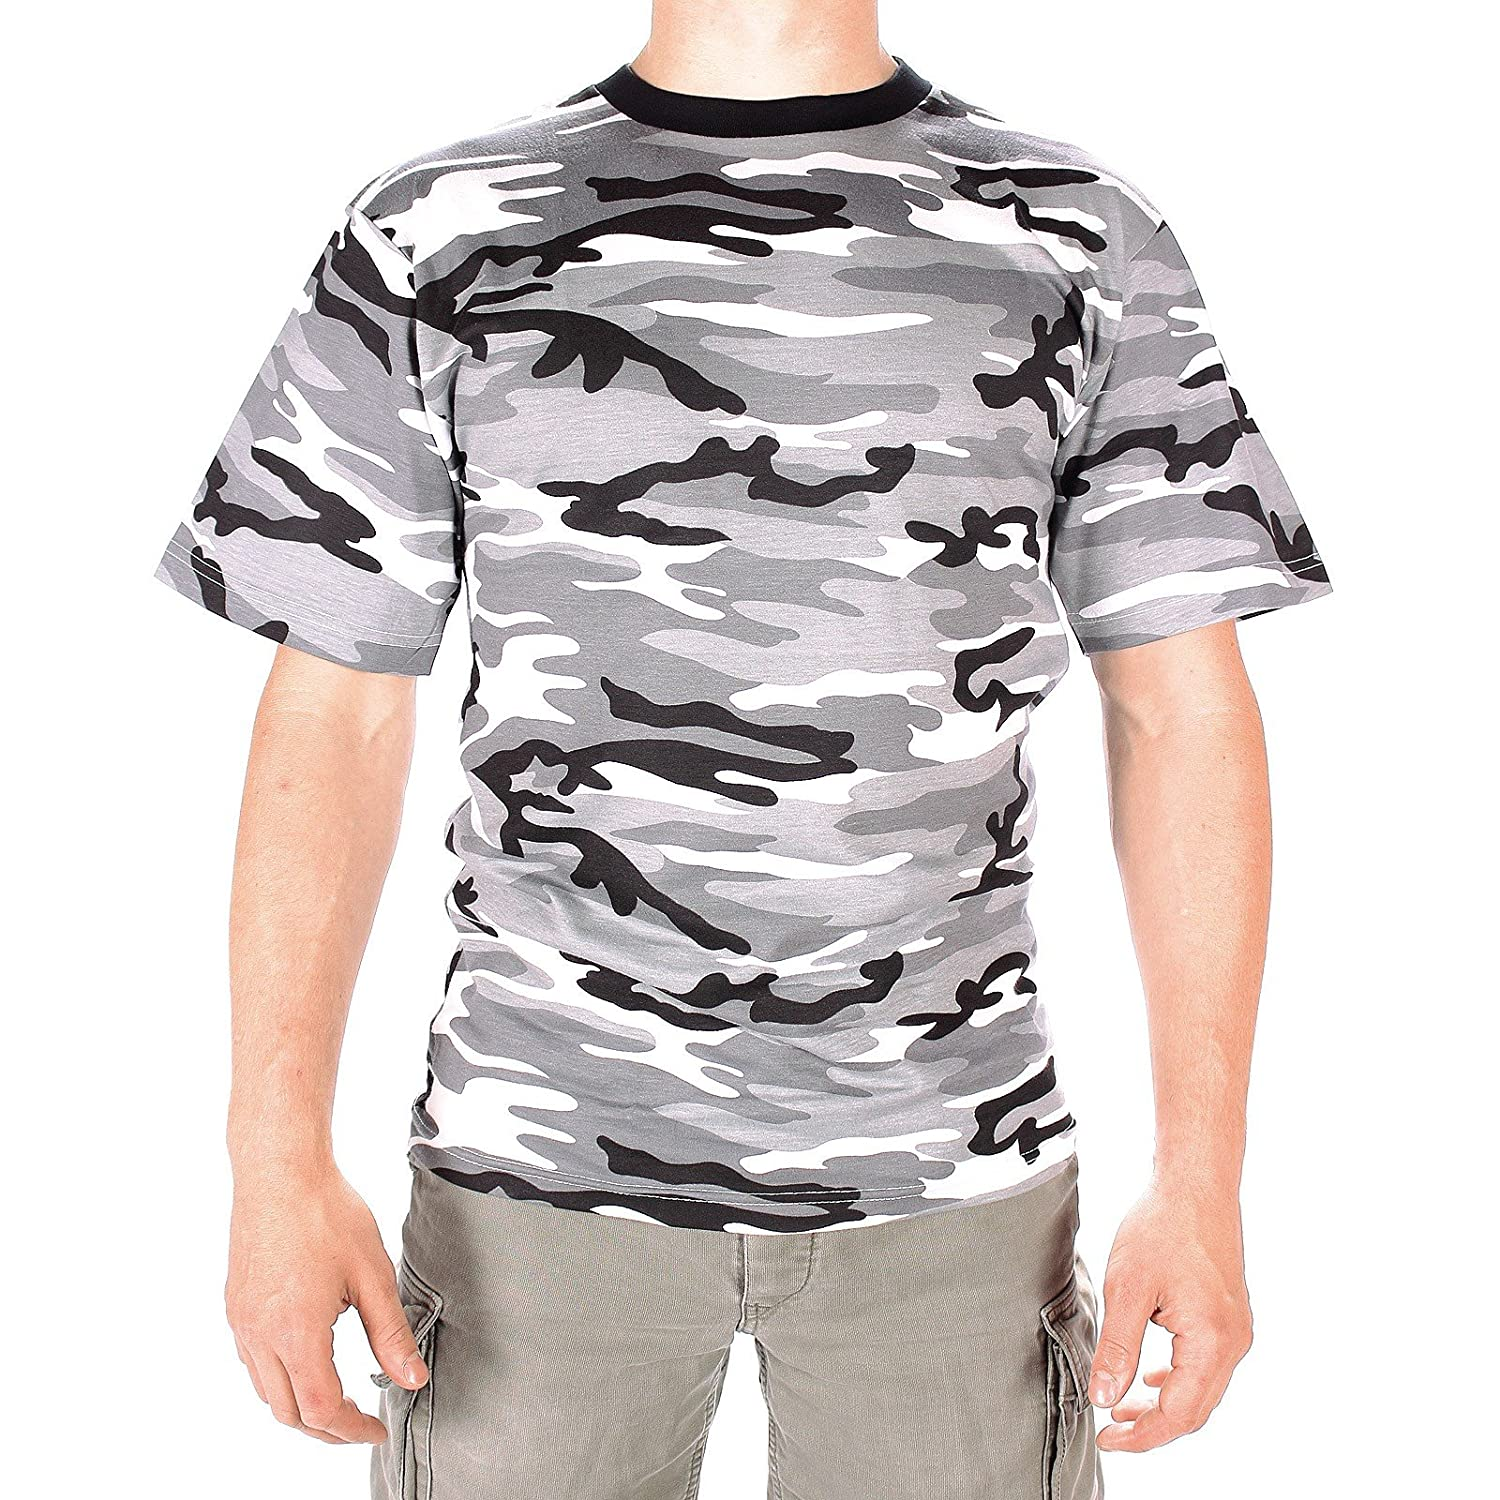 Mens Military Camouflage T-Shirts Short Sleeve Urban Camo (2X-Large) Sturm - Miltec 11012022